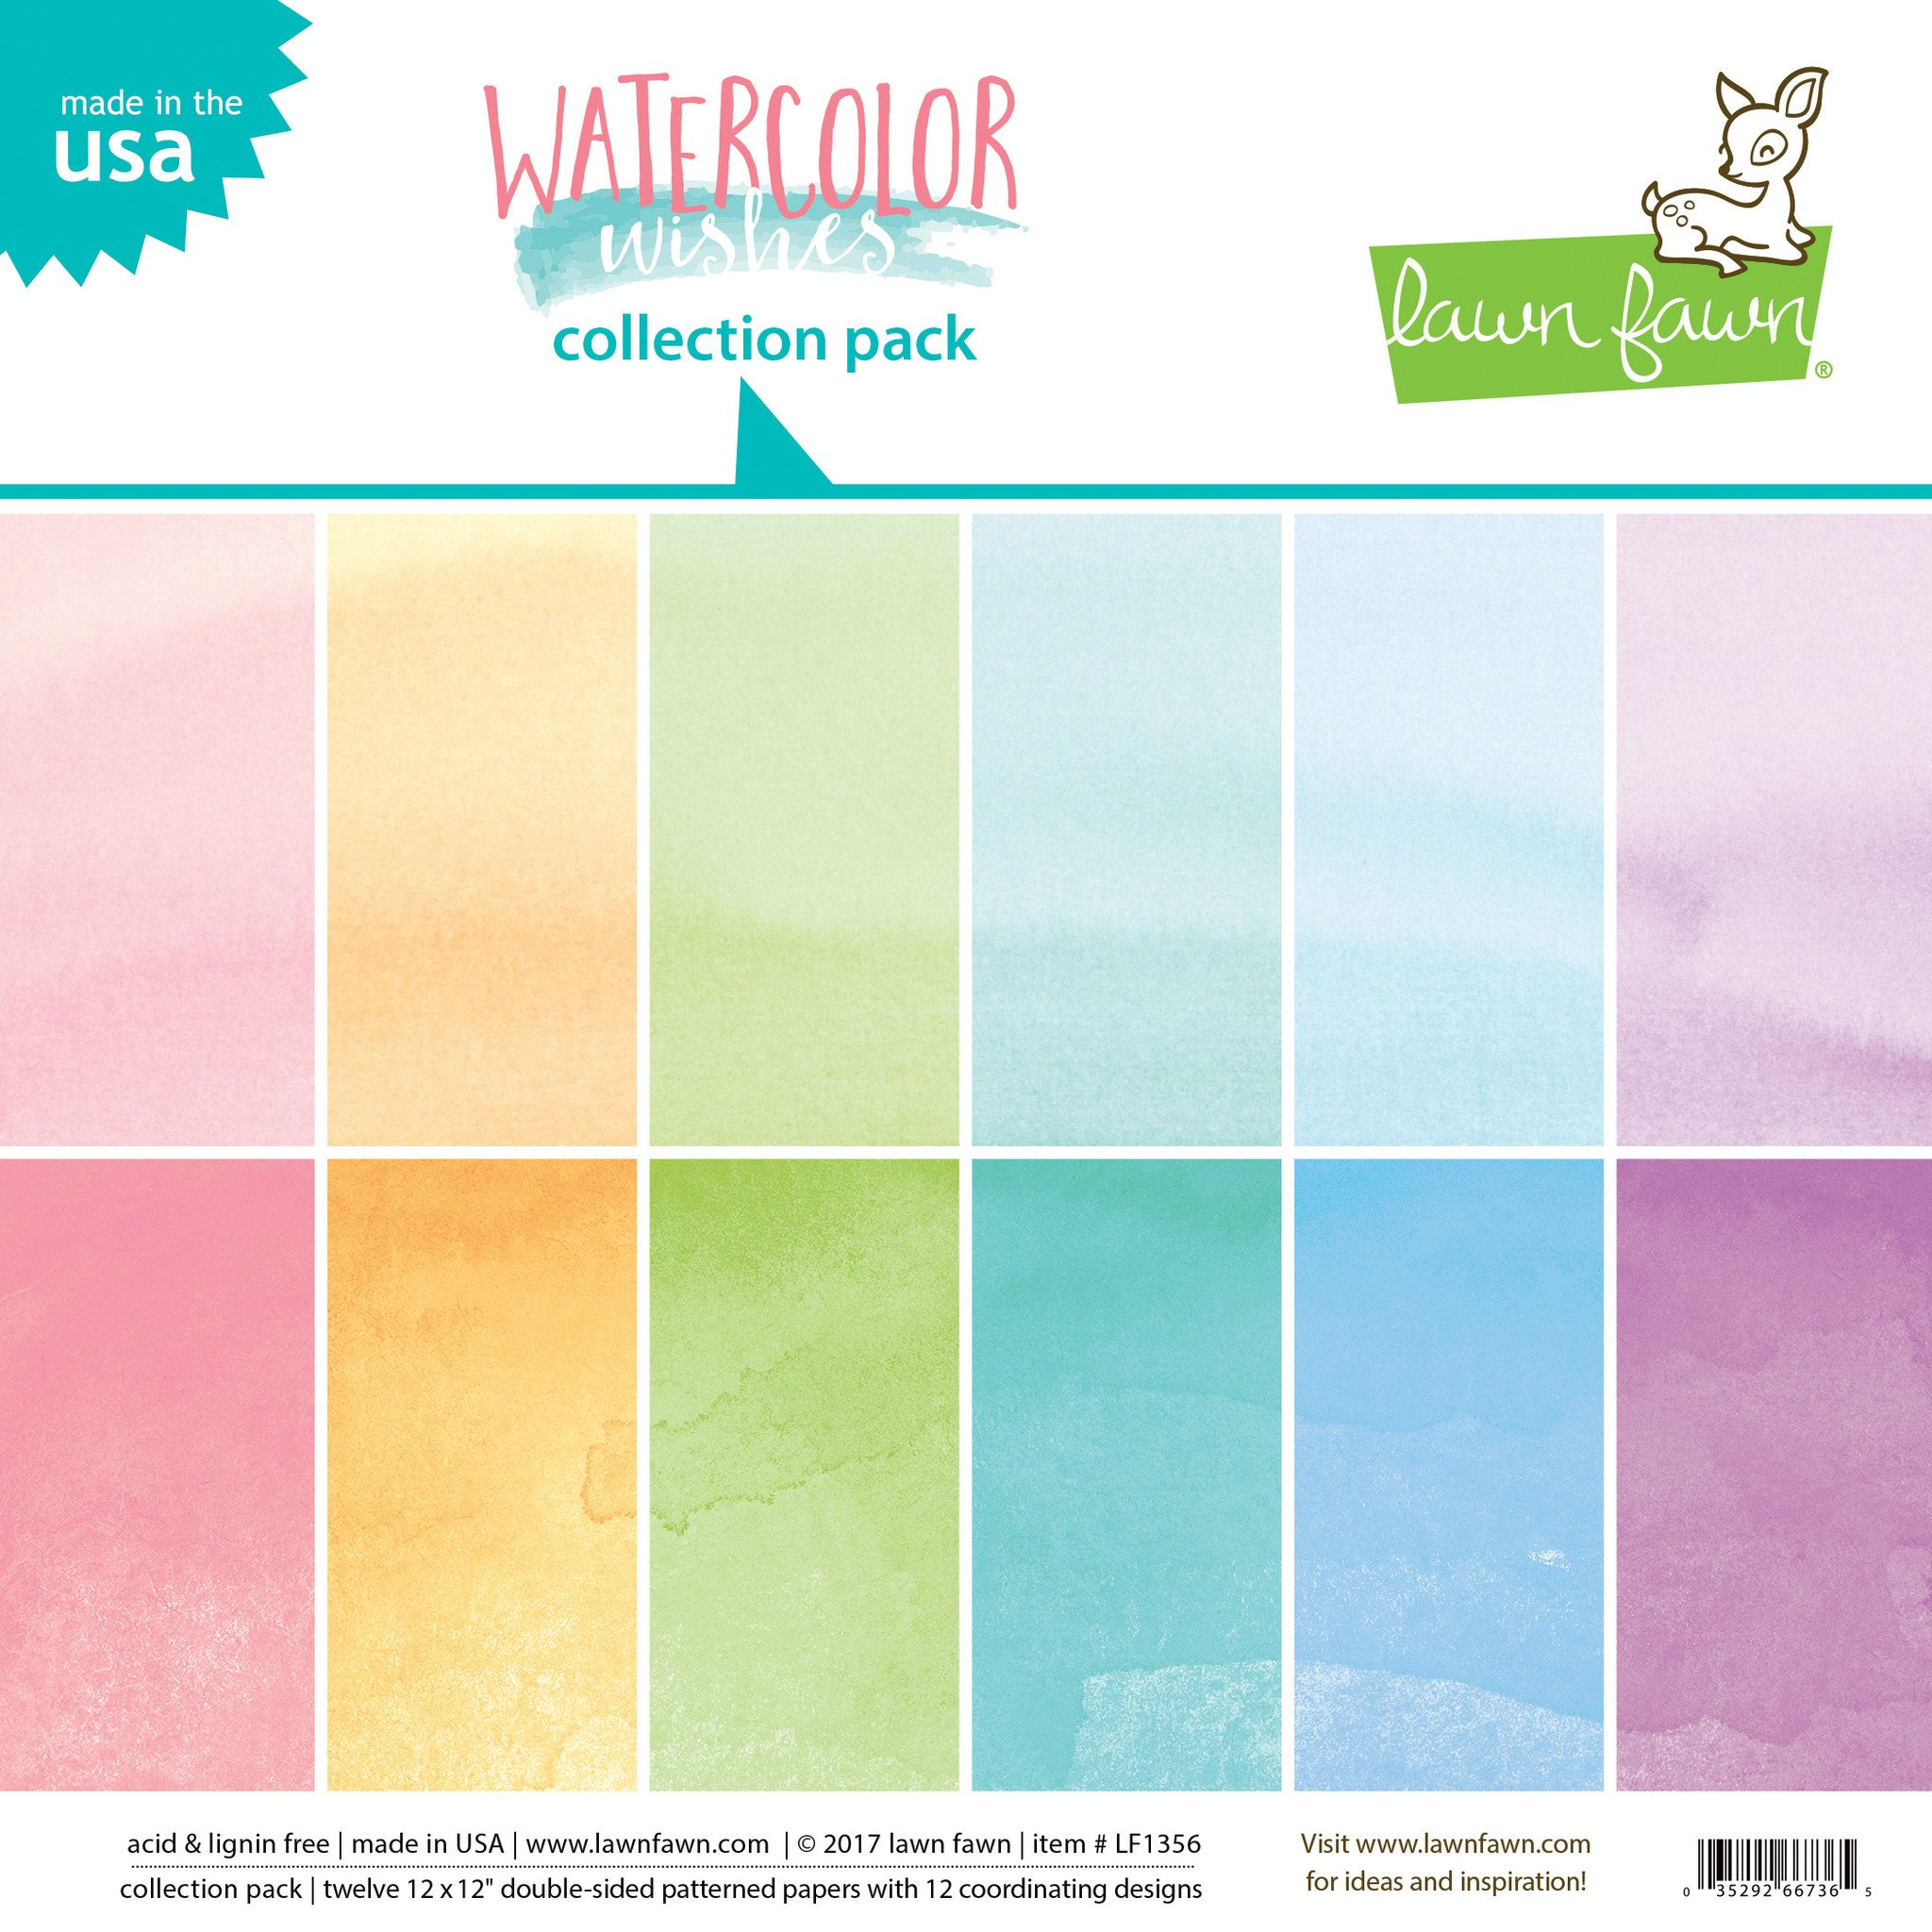 2048x2048 Watercolor Wishes Collection Pack Lawn Fawn